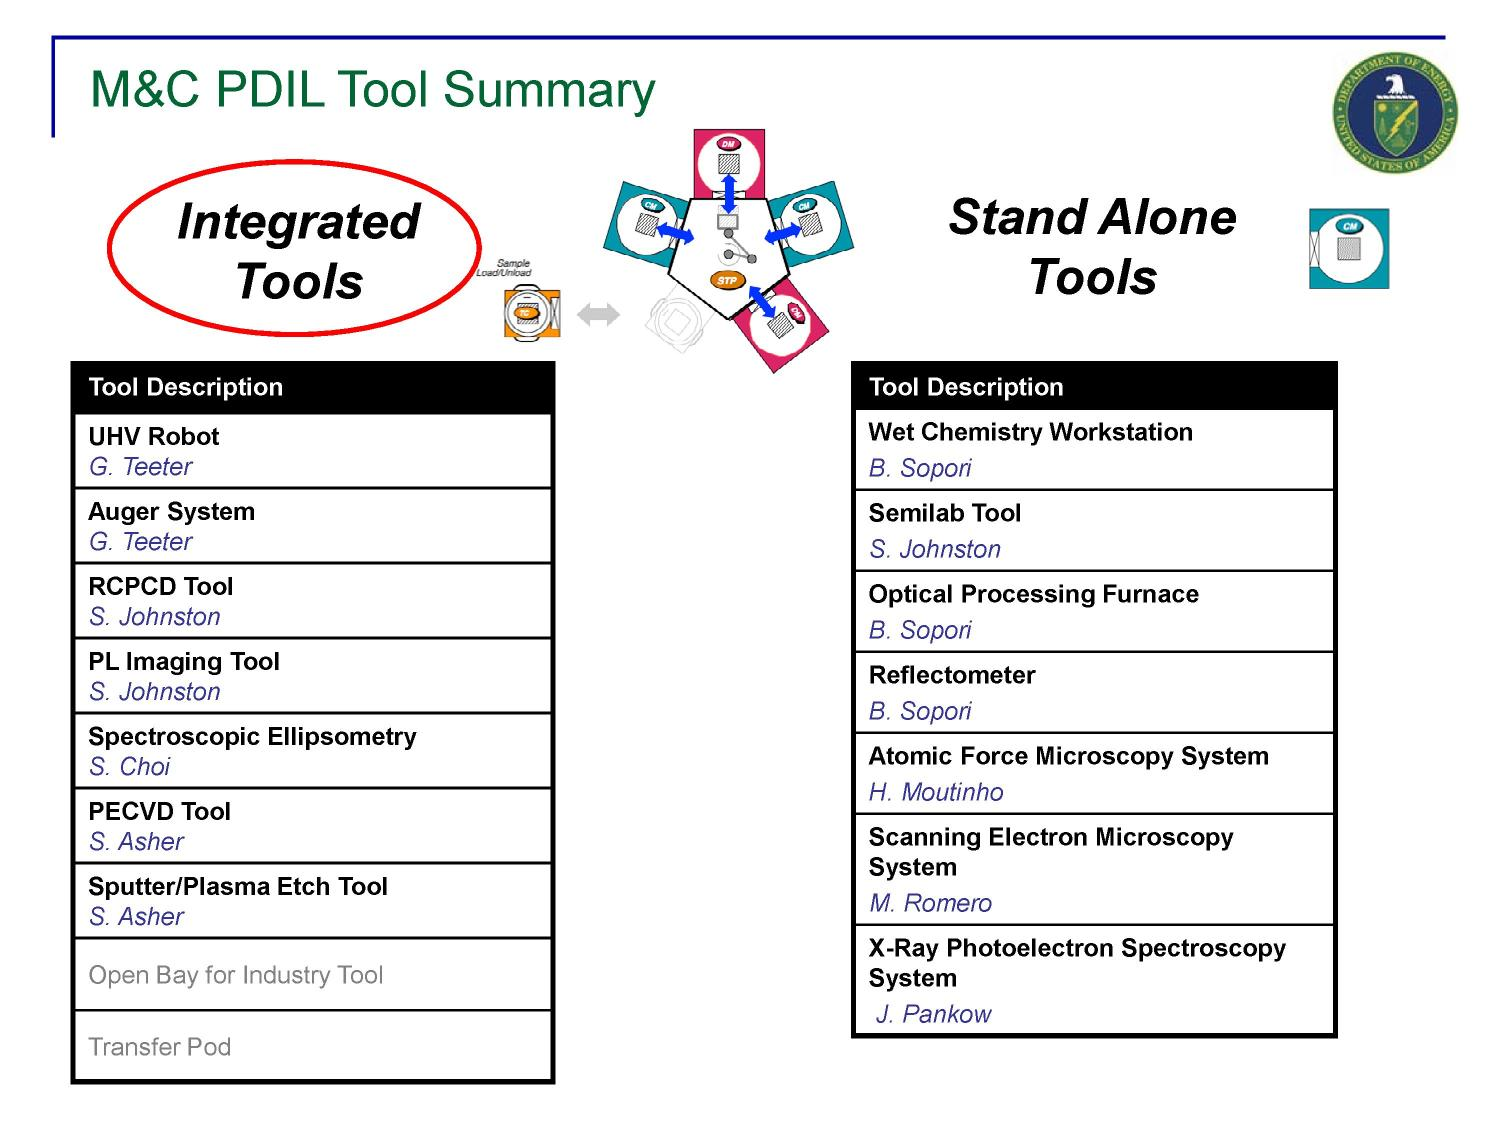 M&C (Measurements & Characterization) PDIL Integrated and Stand-Alone Tools (Presentation)                                                                                                      [Sequence #]: 4 of 28